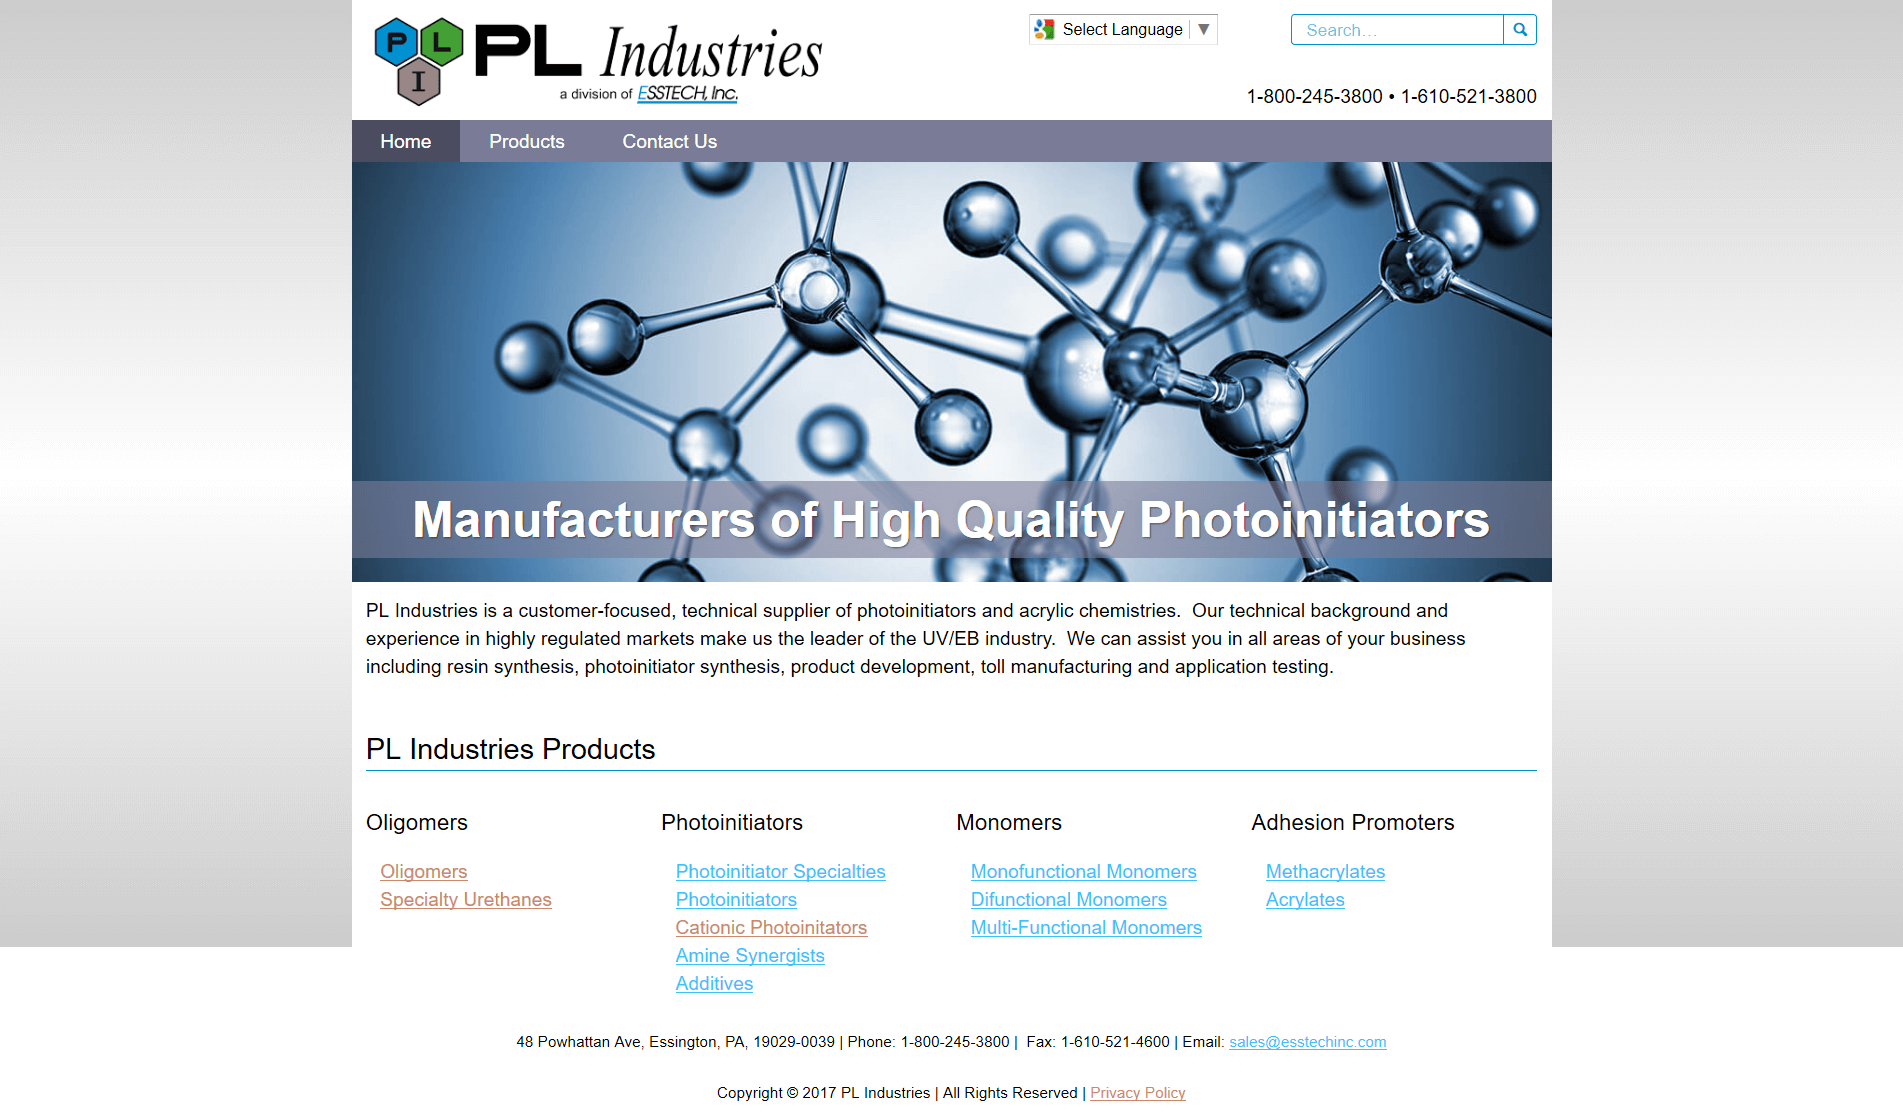 PL Industries